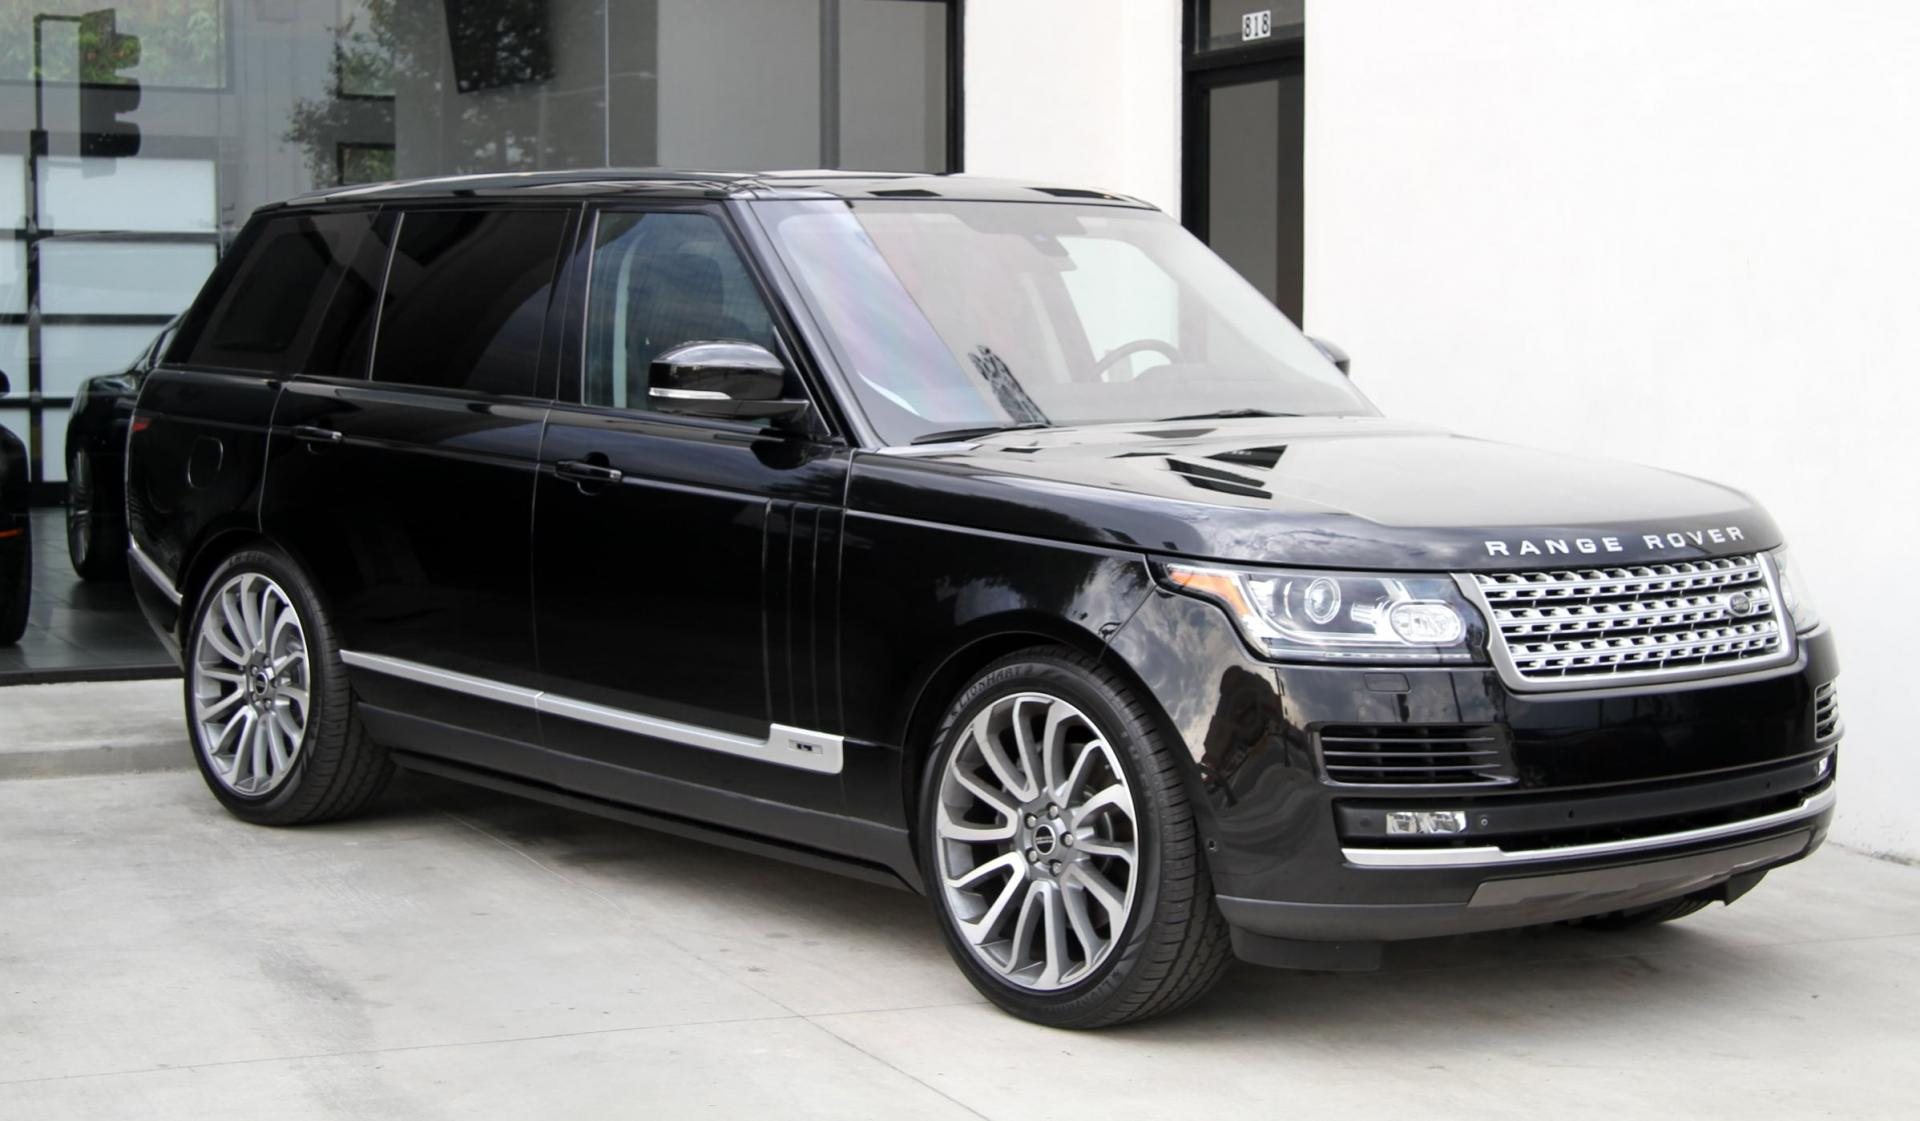 Range Rover Used For Sale >> 2015 Land Rover Range Rover Supercharged ** LONG WHEEL BASE ** Stock # 5974 for sale near ...